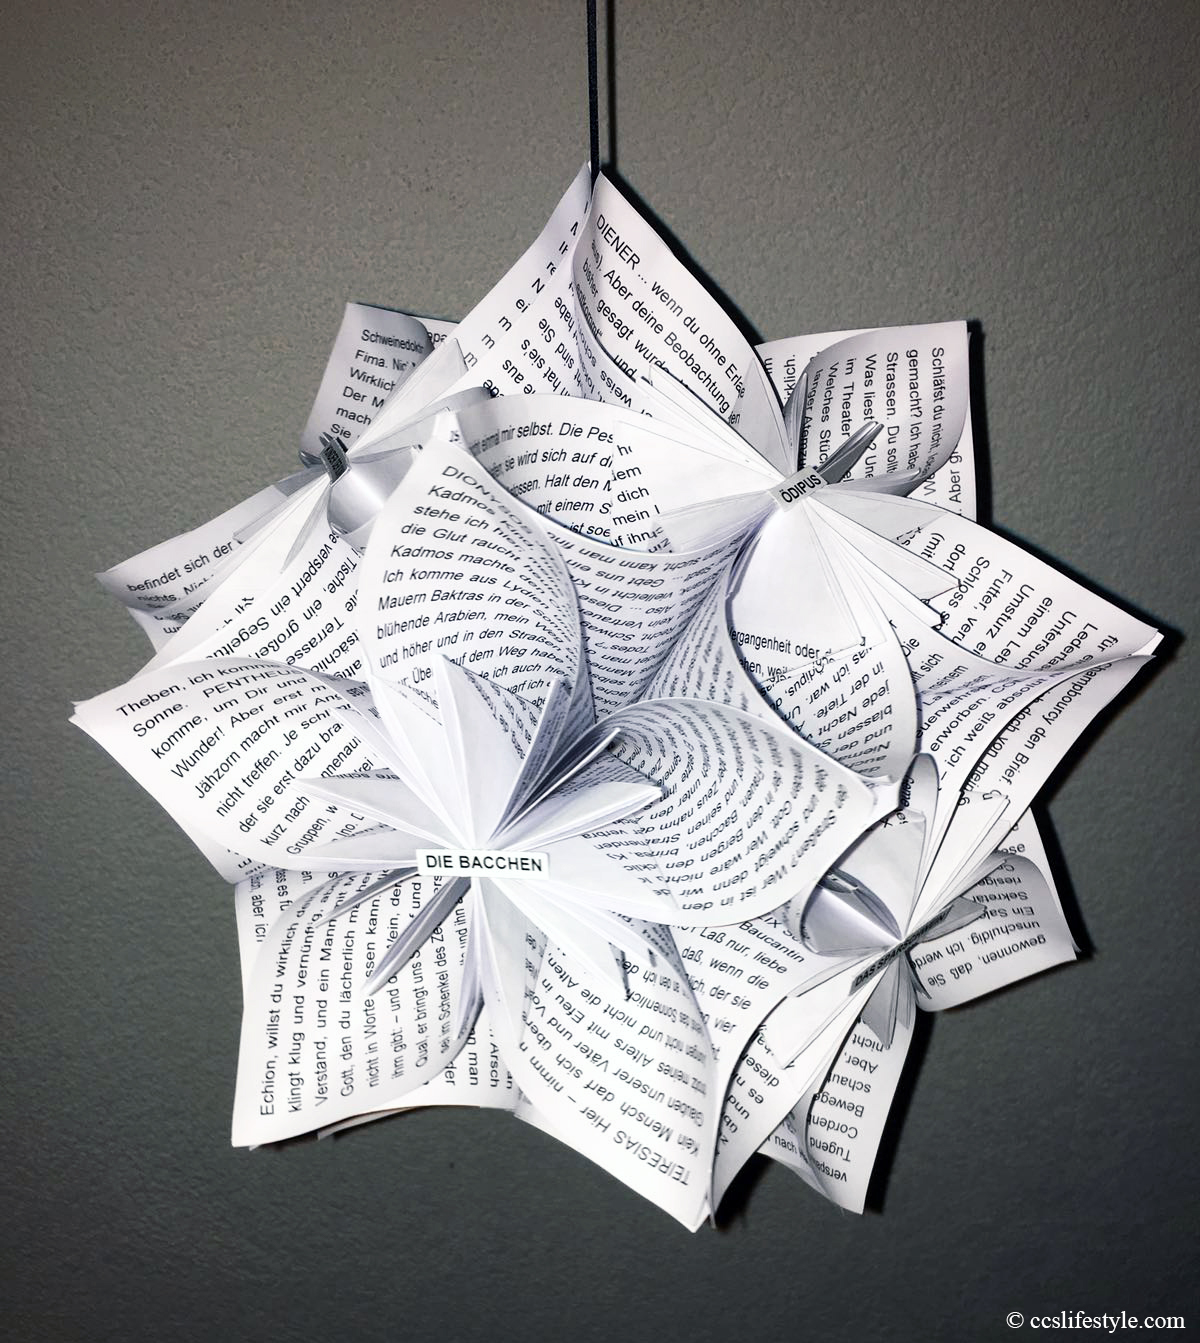 Ccs Lifestyle Origami Flower Ball